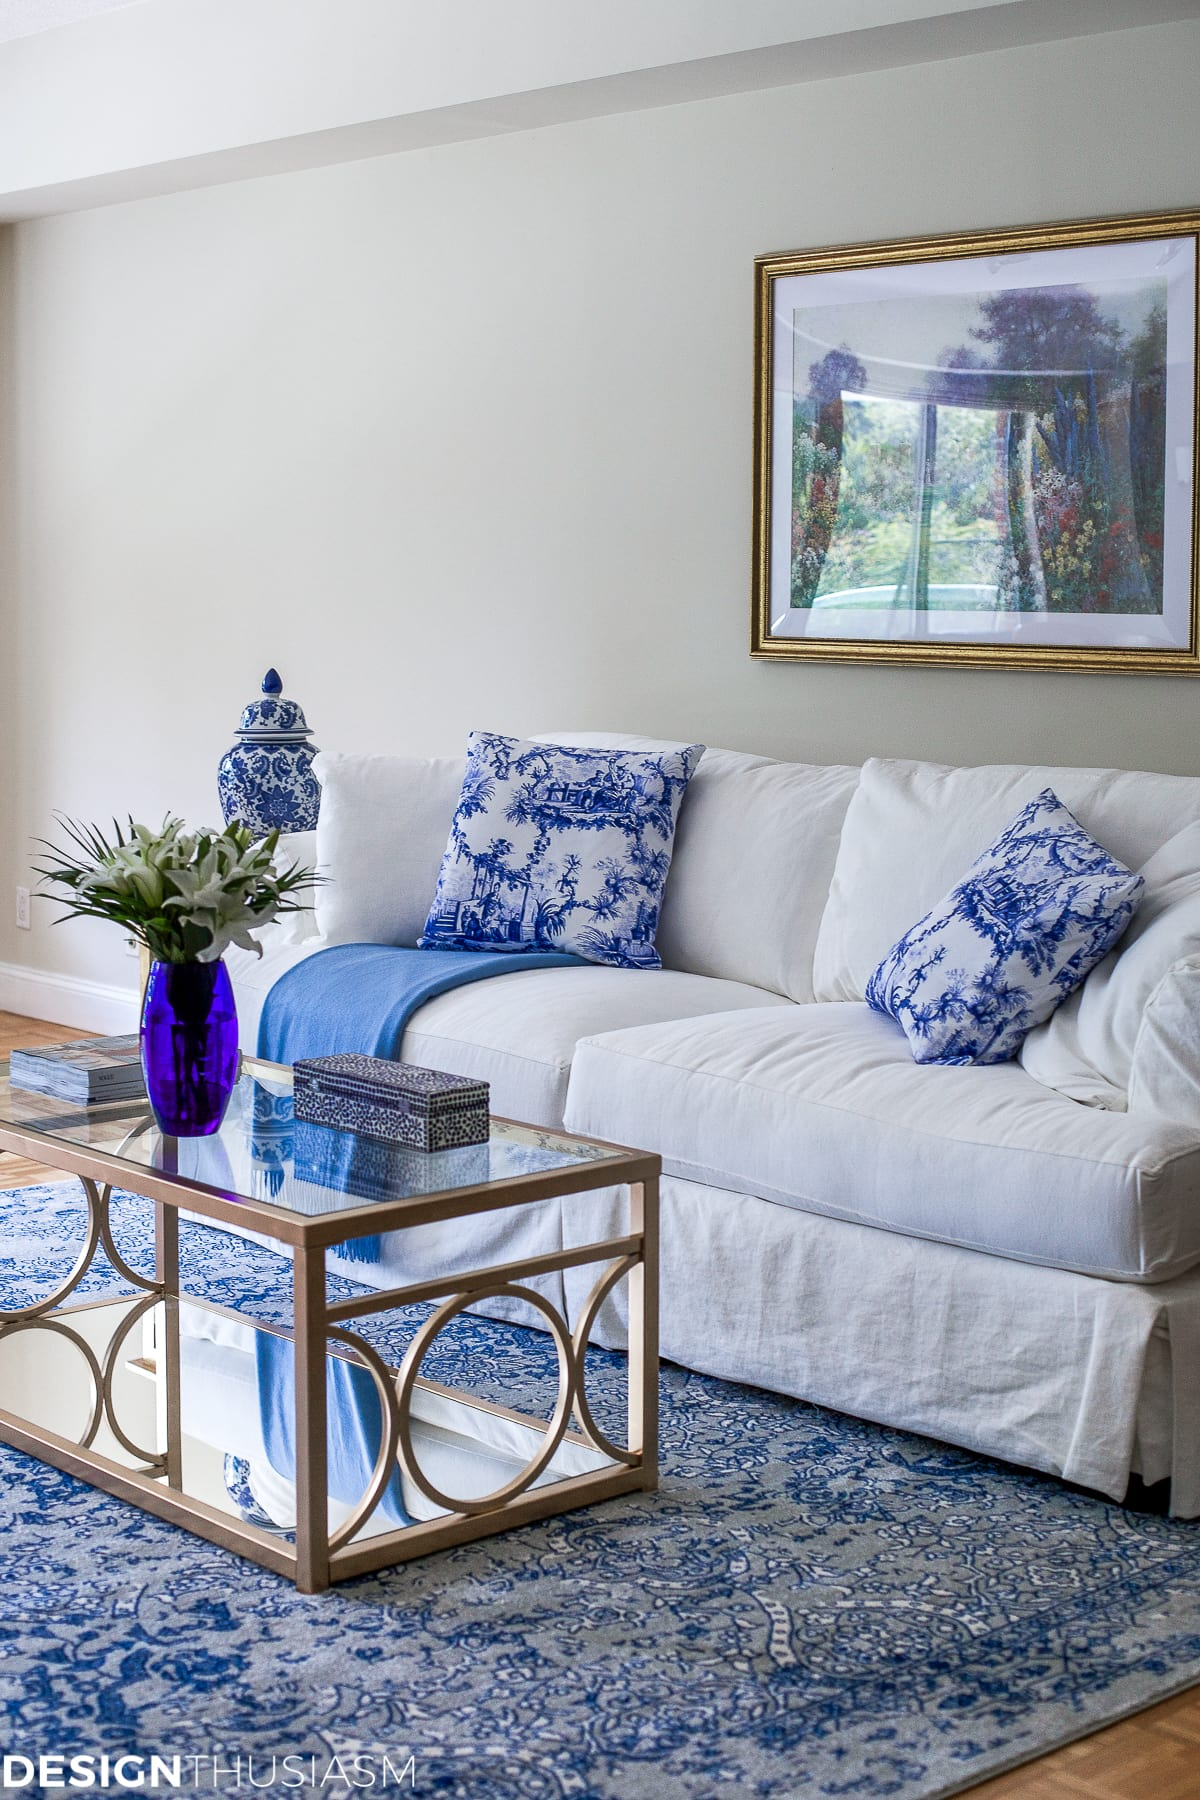 Blue and White Decor: Maintaining Your Style When Downsizing a Home